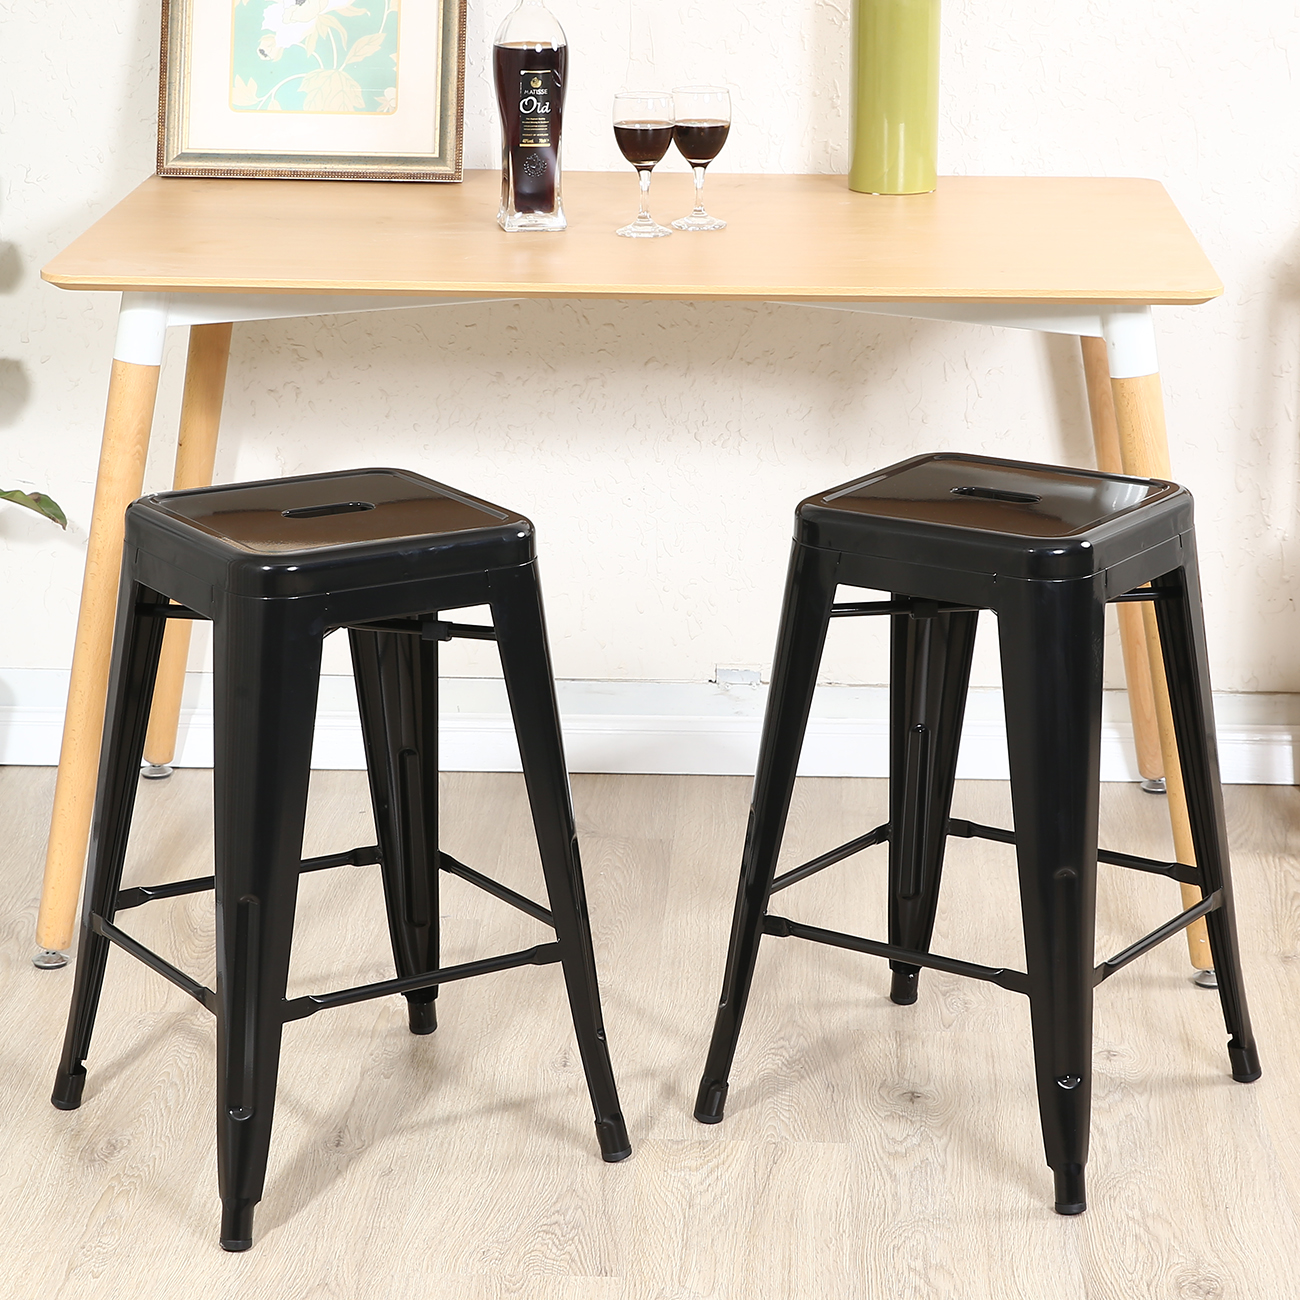 Set of 2 metal bar stool counter height home 24 26 30 inch silver black ebay - Average height of bar stools ...